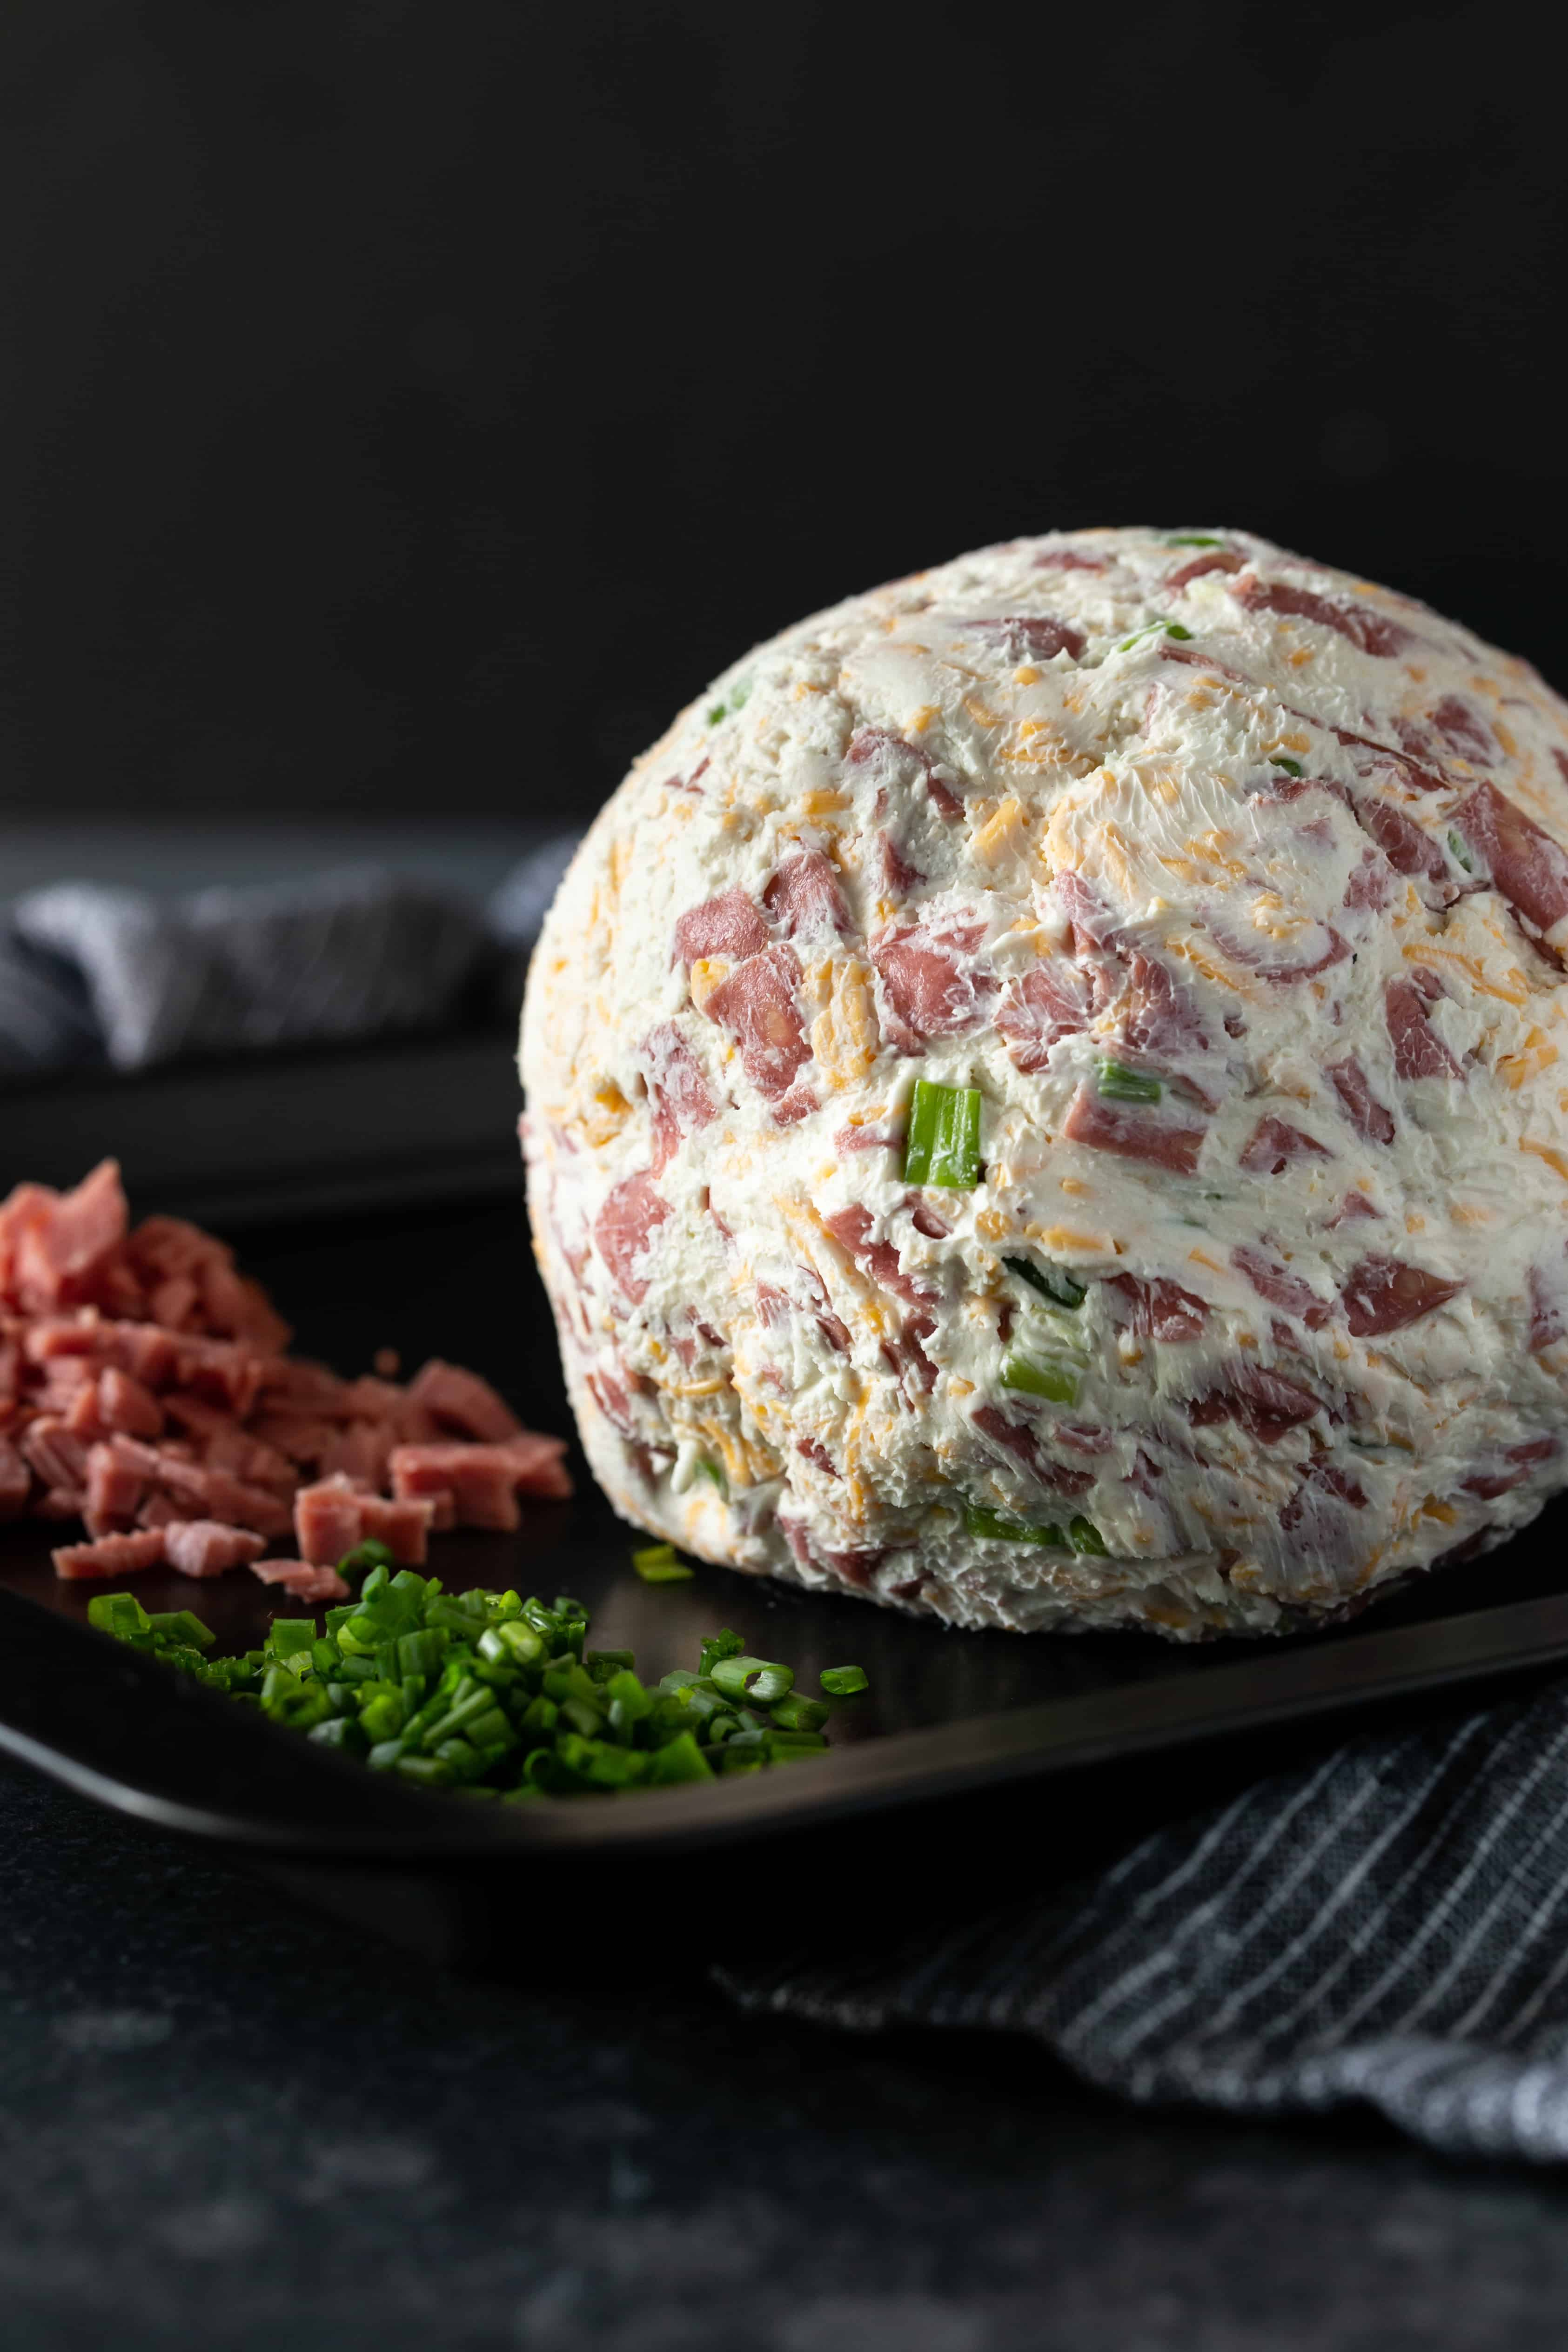 Chipped beef cheese ball that hasn't been rolled in the garnish yest with diced dried beef and chives on a plate ready for rolling.